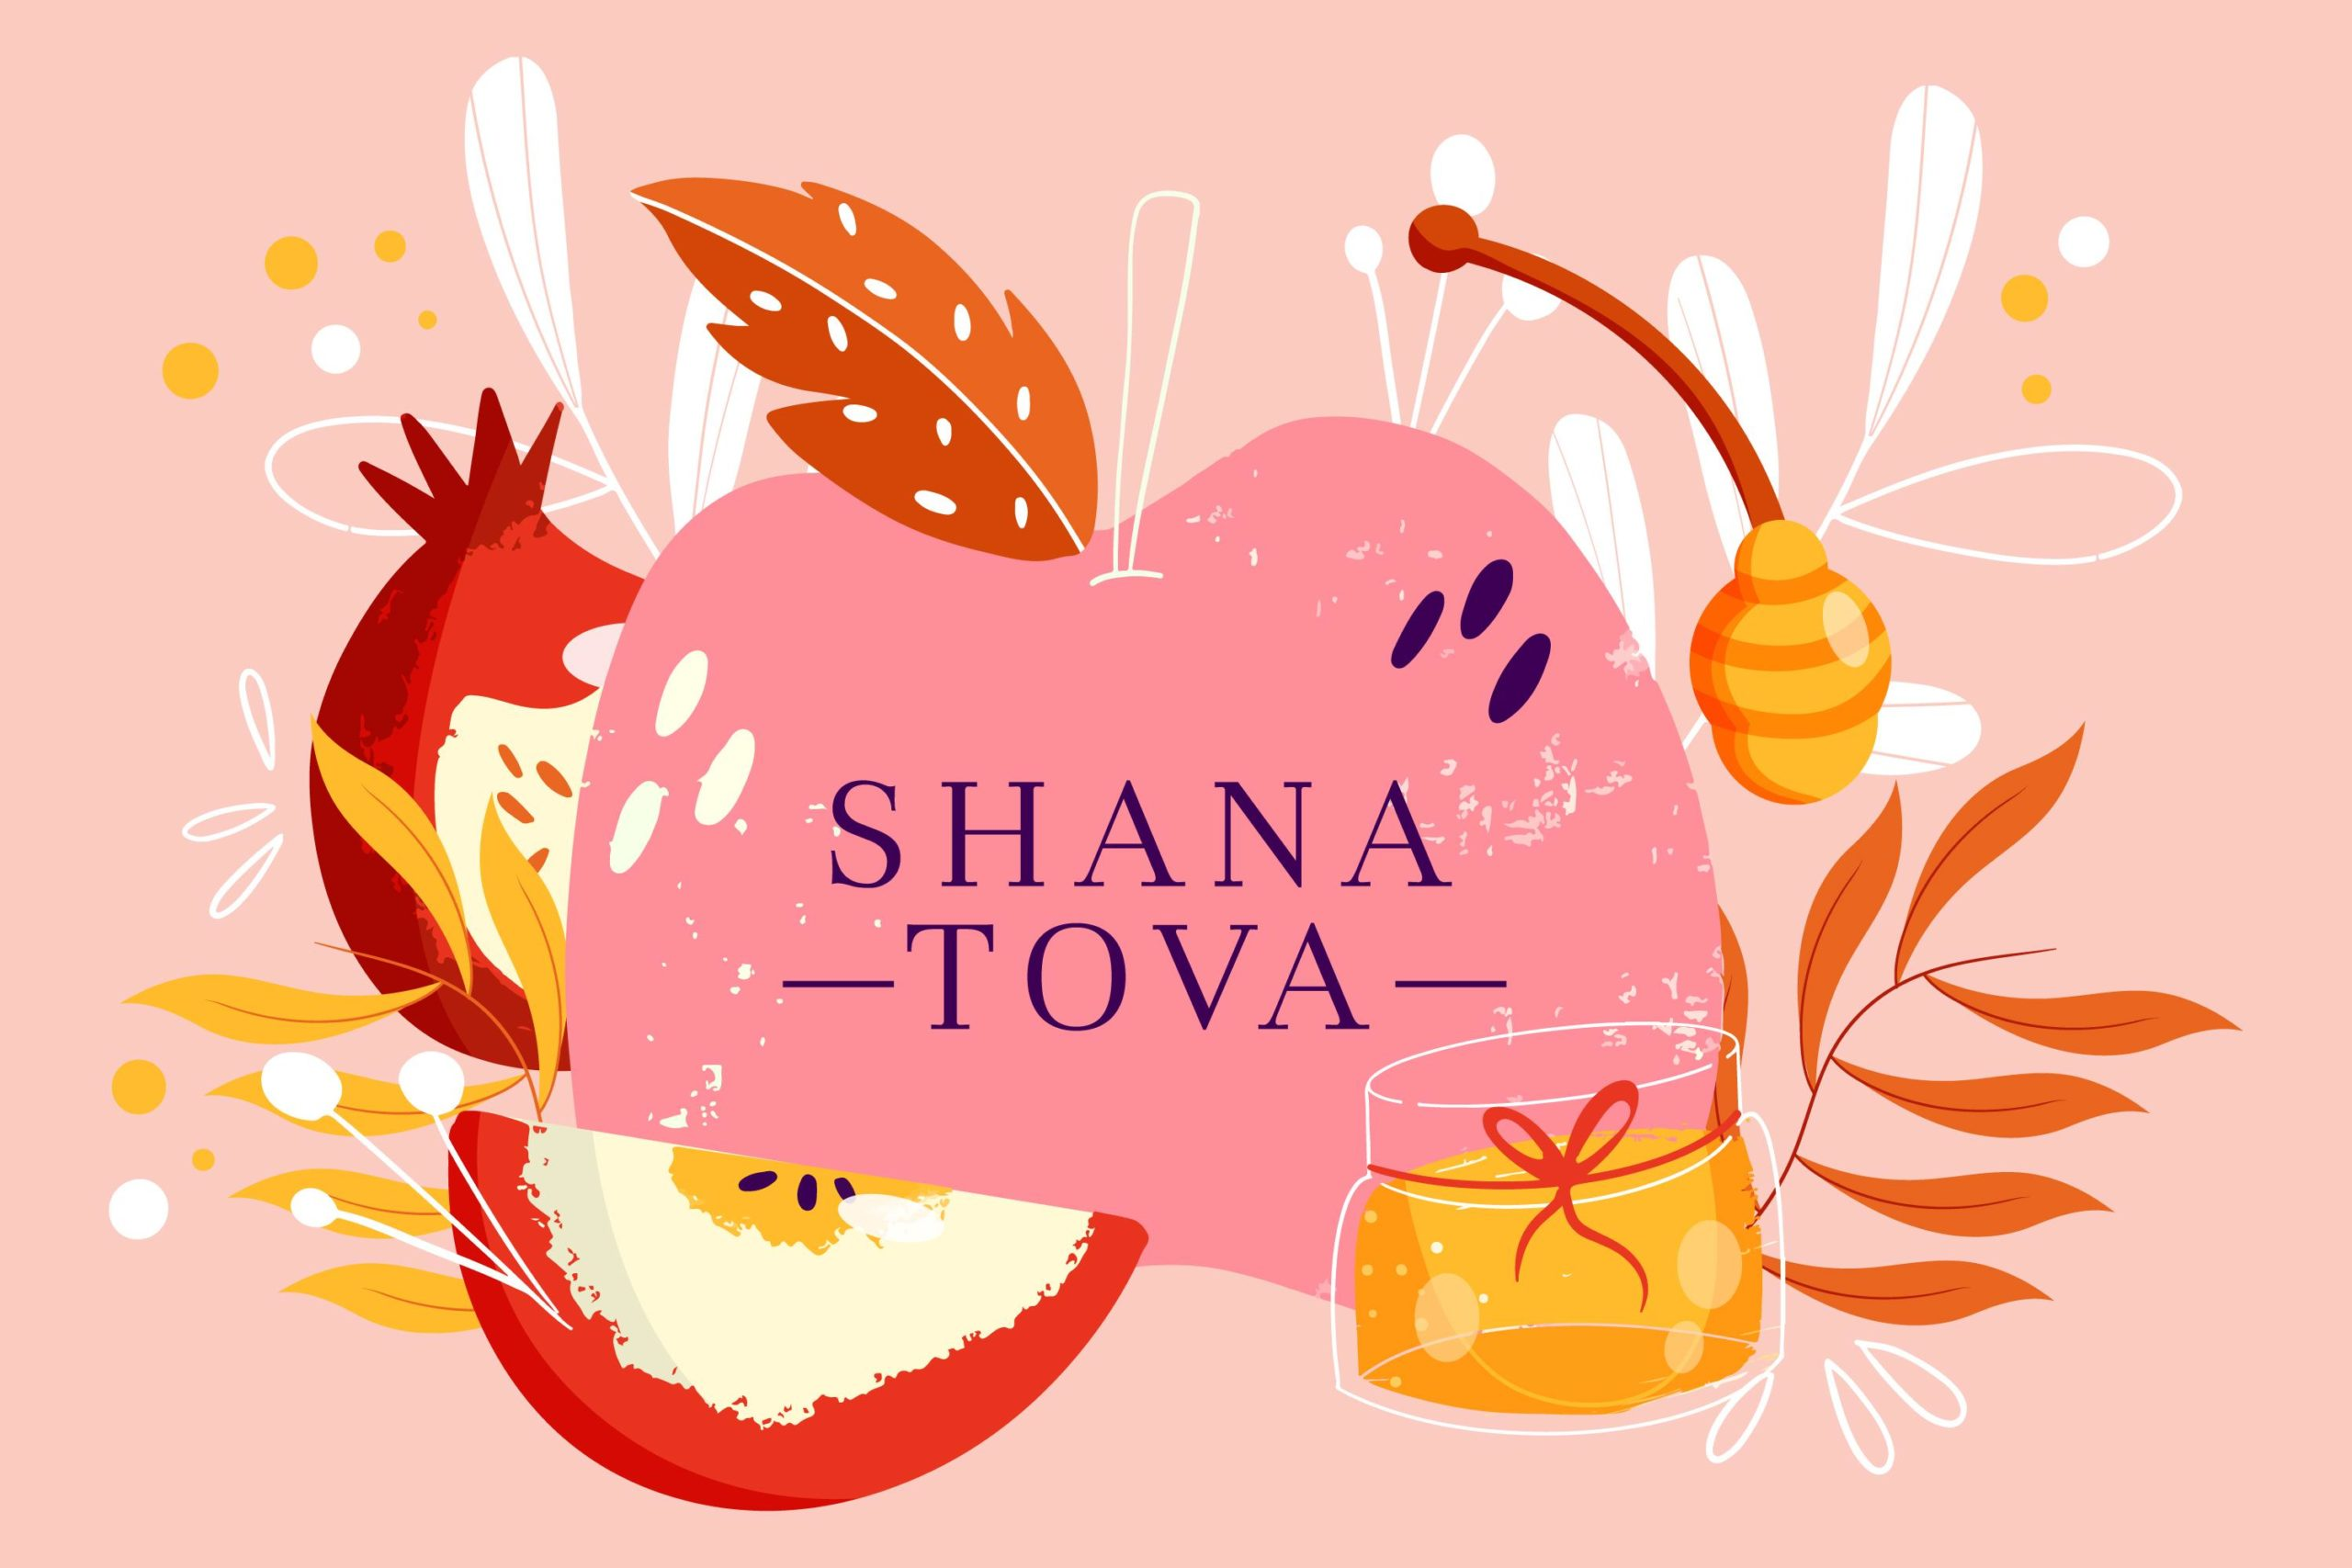 Shana Tova 2021 Greetings, HD Images, Messages, Songs, Quotes, and Stickers to greet your loved ones